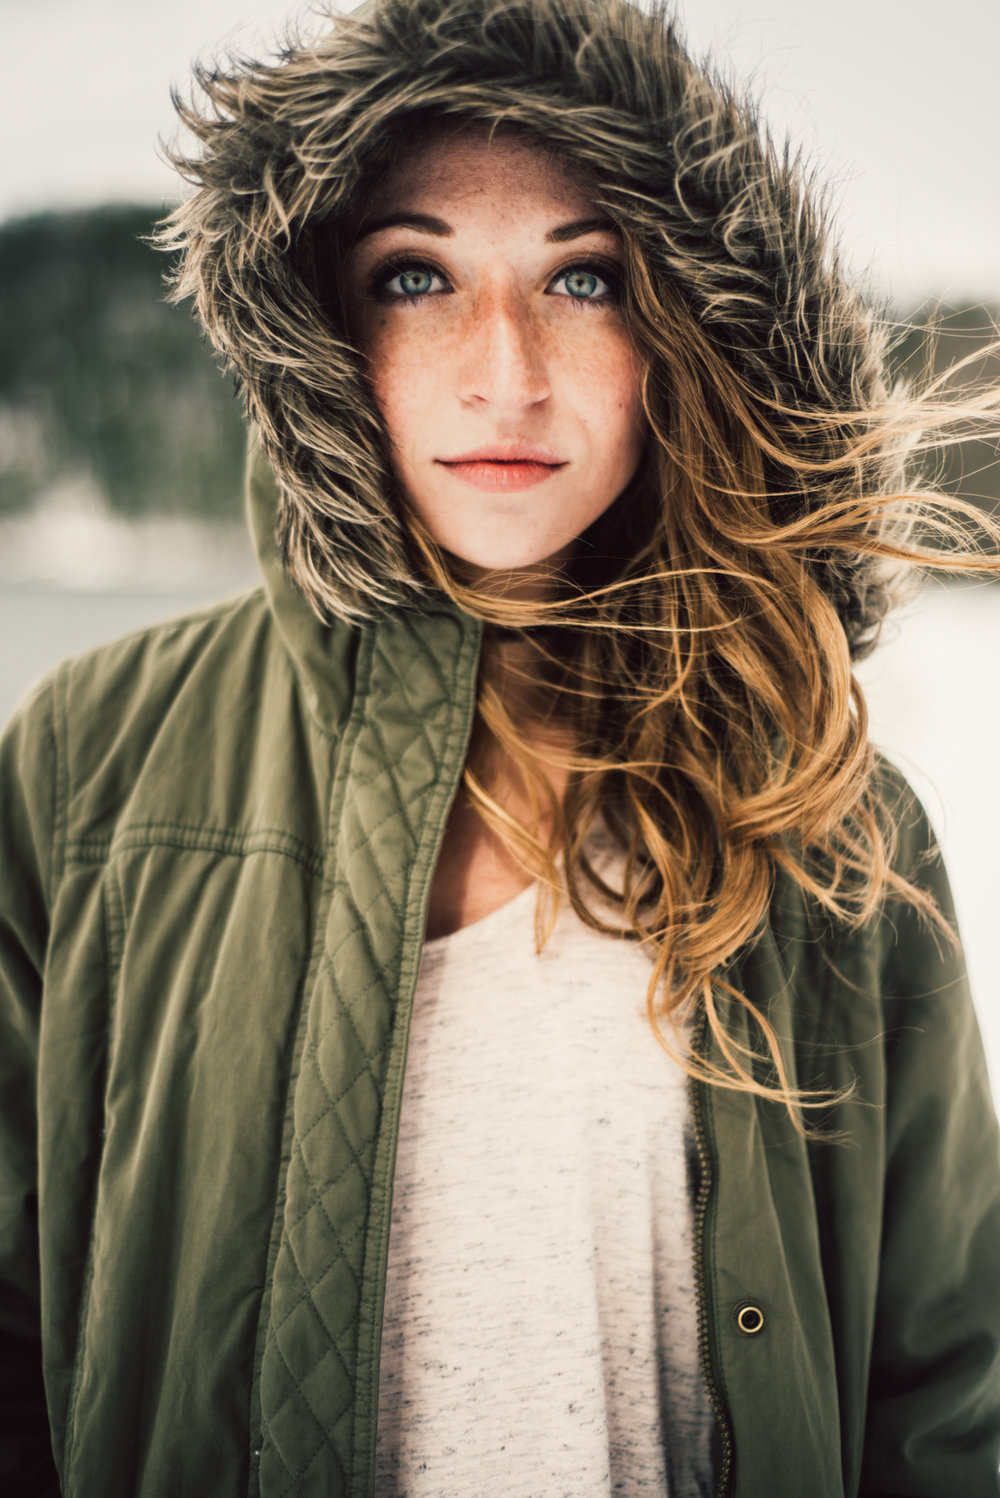 Moody+Snowy+Portrait+Session+at+Lake+Arrowhead+in+Luray+Virginia_15.jpg